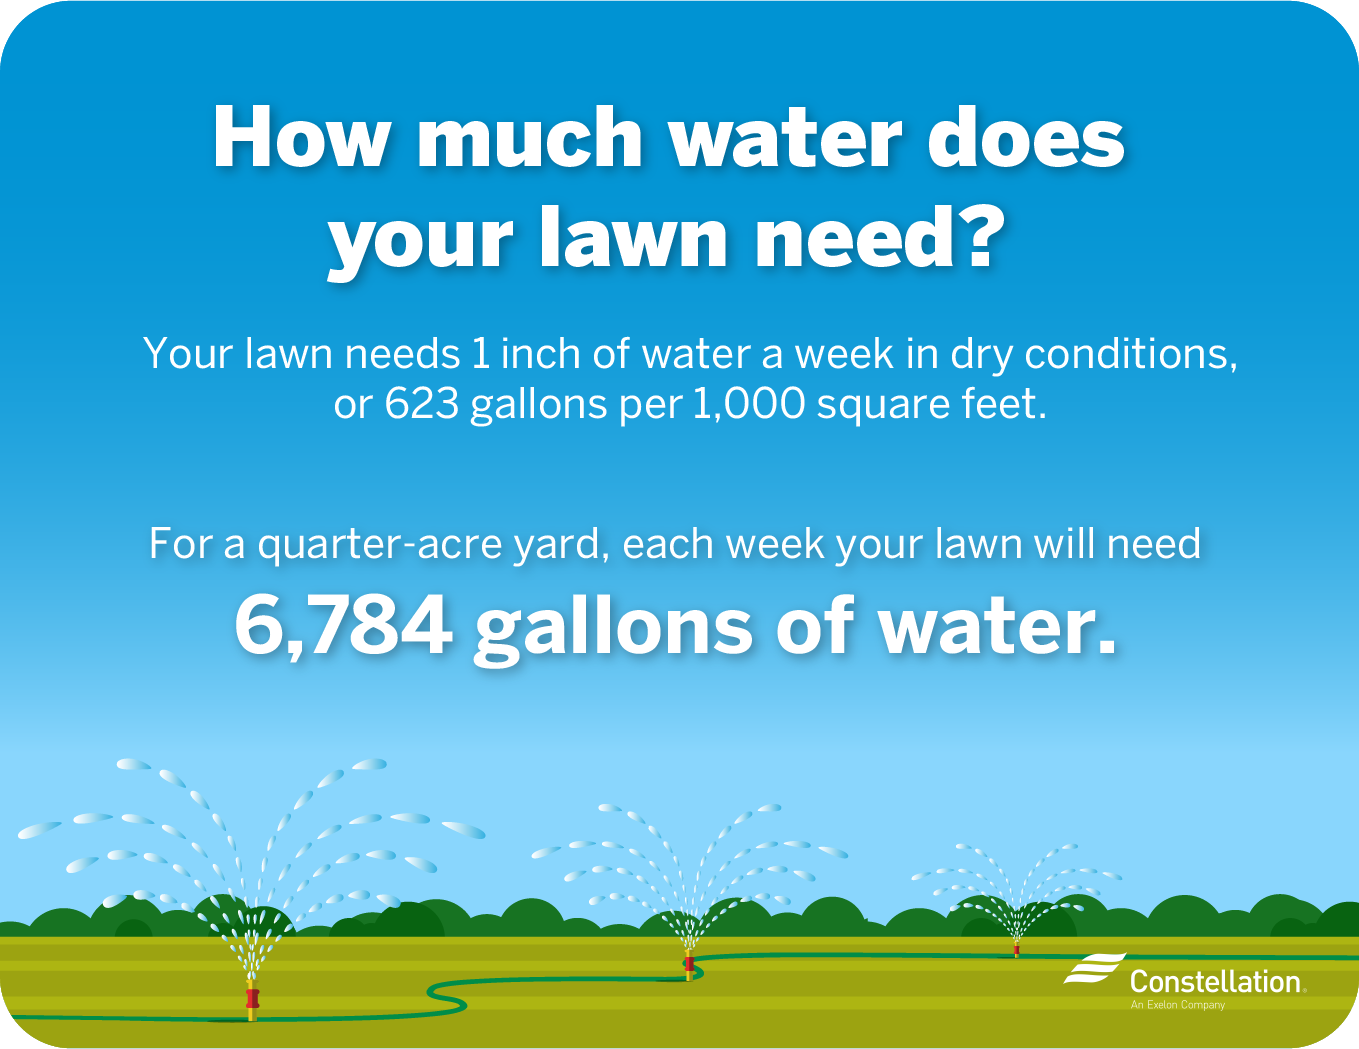 How much water is used to water a lawn?